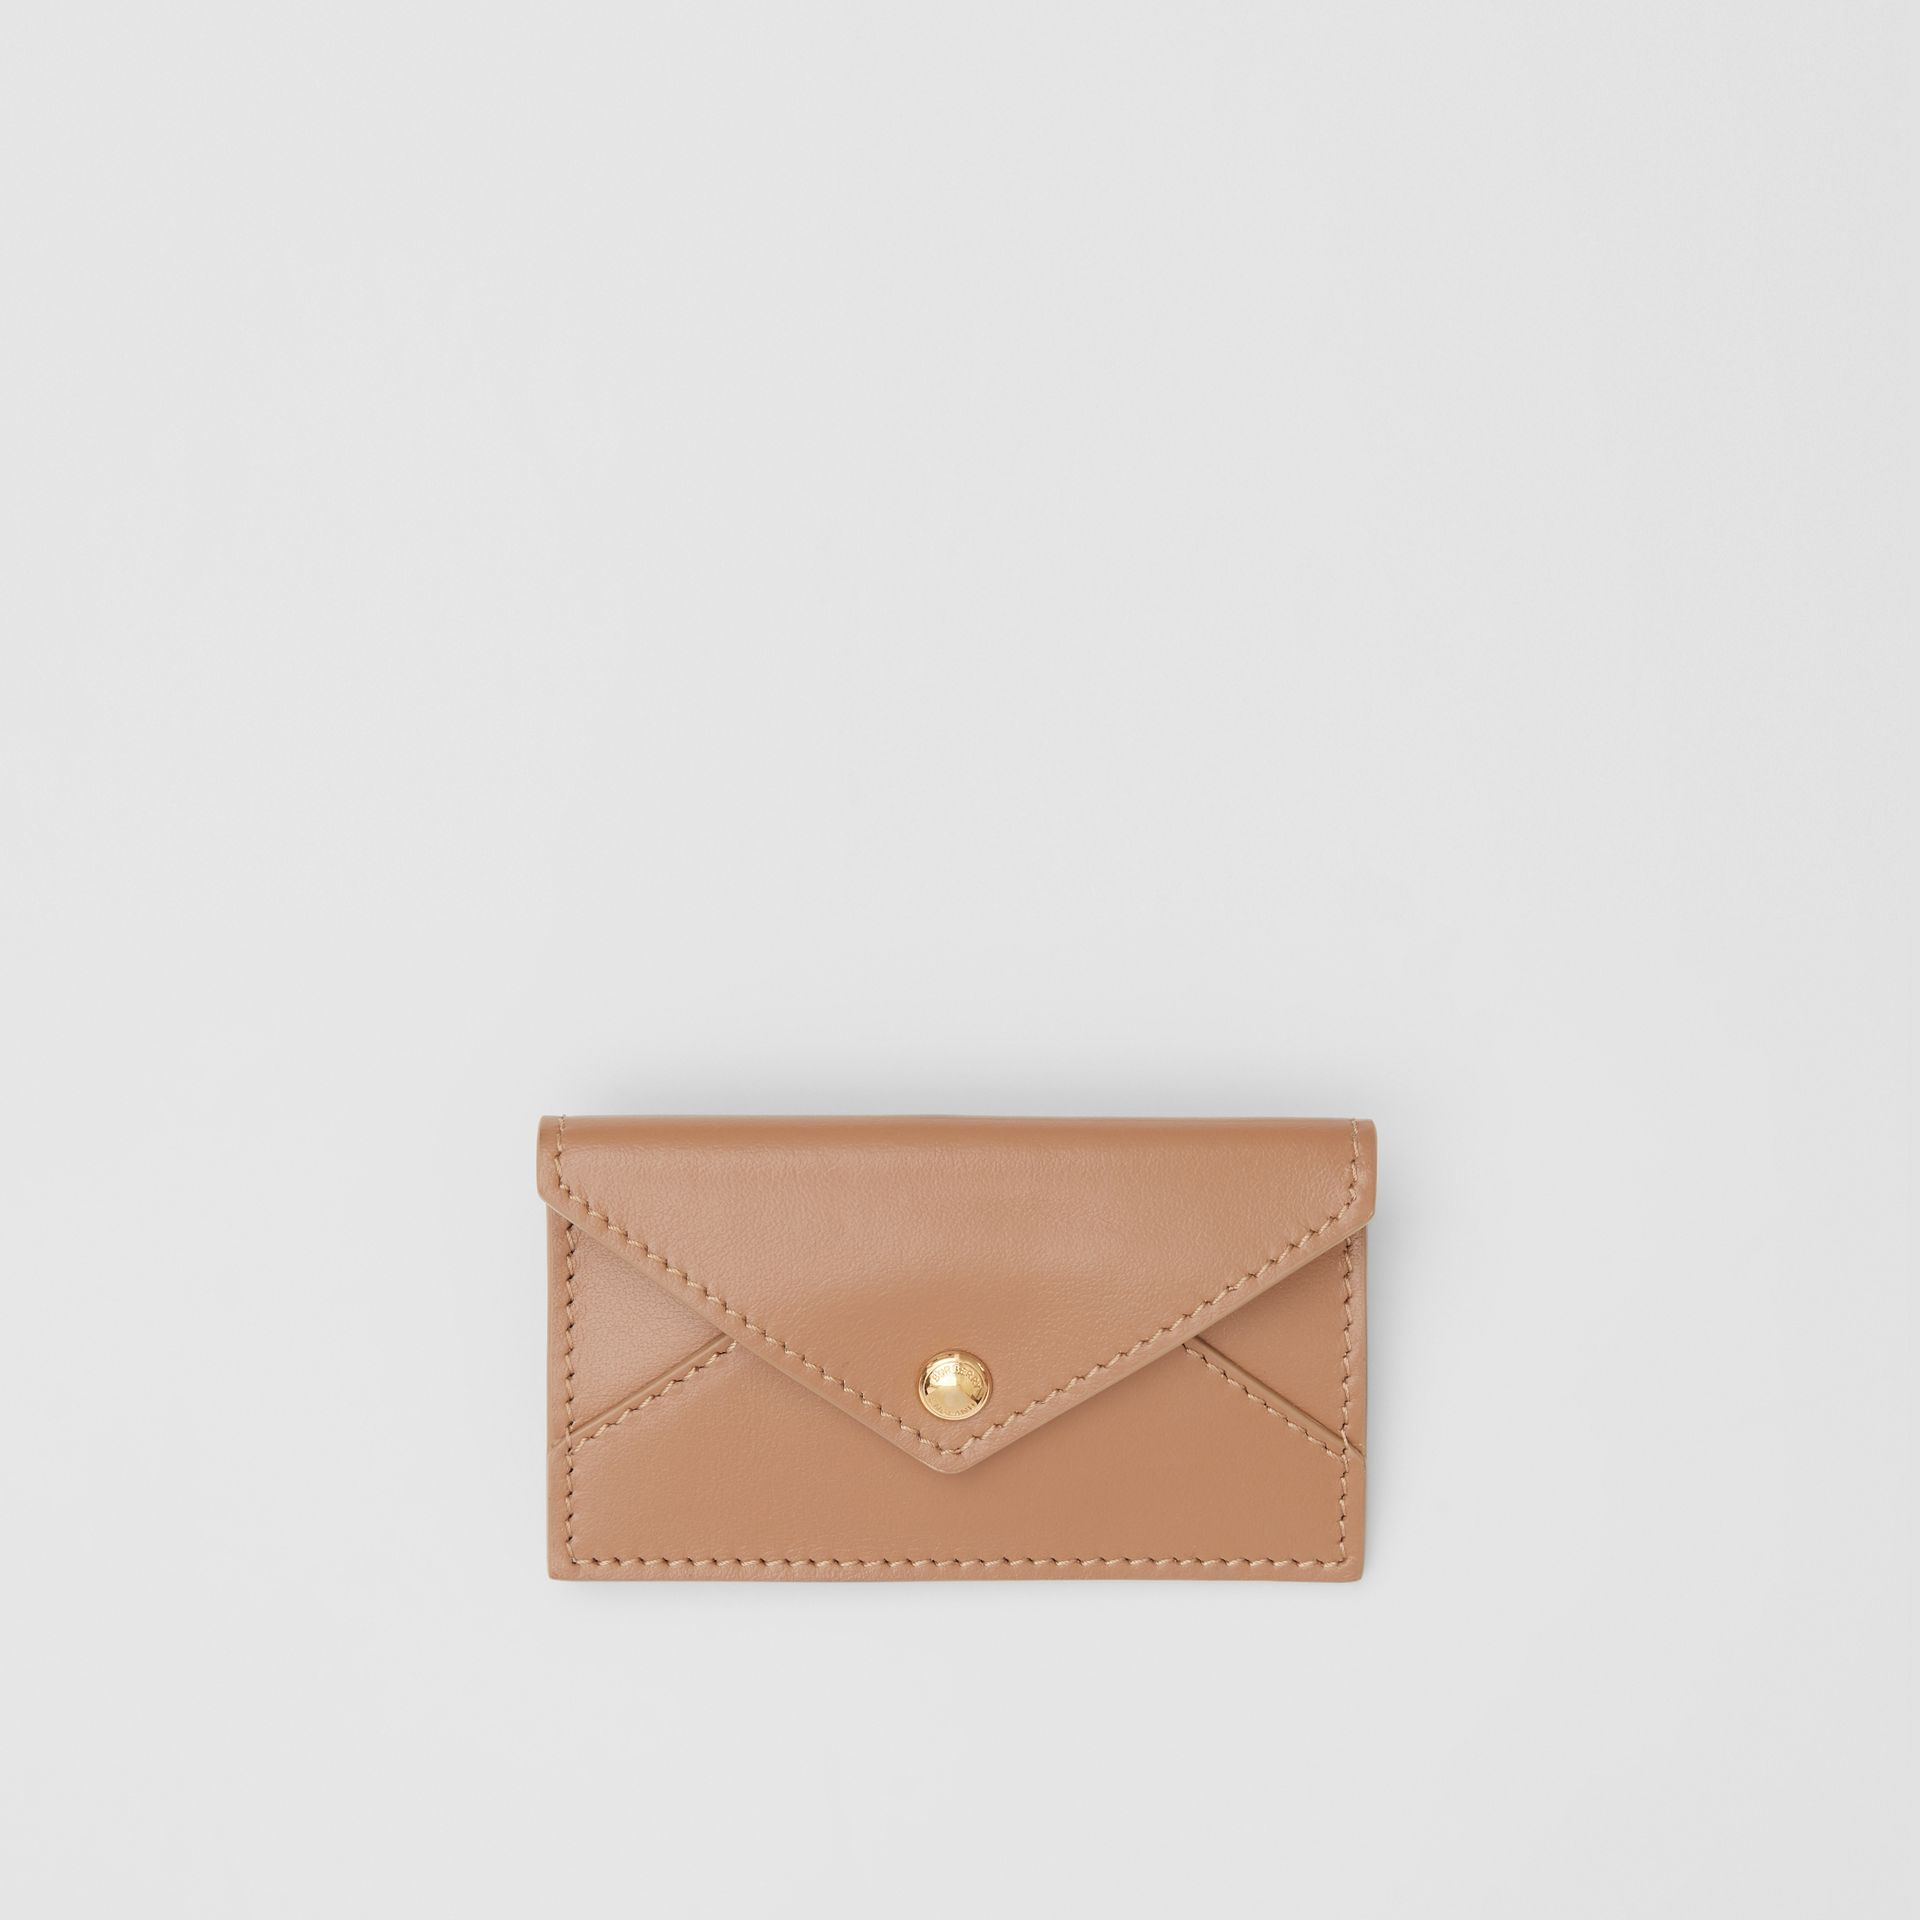 Belted Quilted Lambskin TB Envelope Clutch in Warm Camel - Women | Burberry Canada - gallery image 8